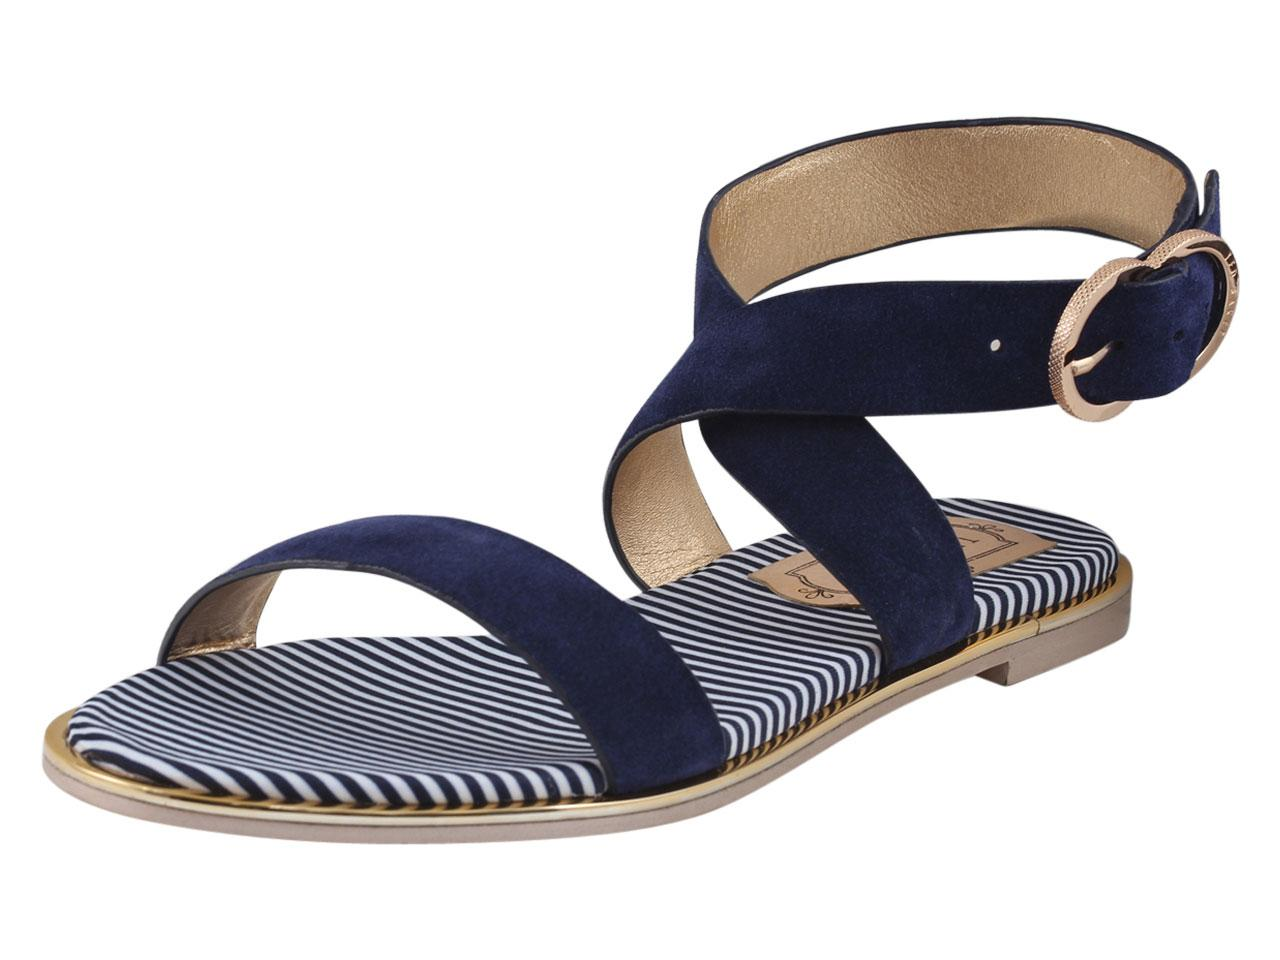 72d033f43f1fe0 Ted Baker Women s Qeredas Sandals Shoes